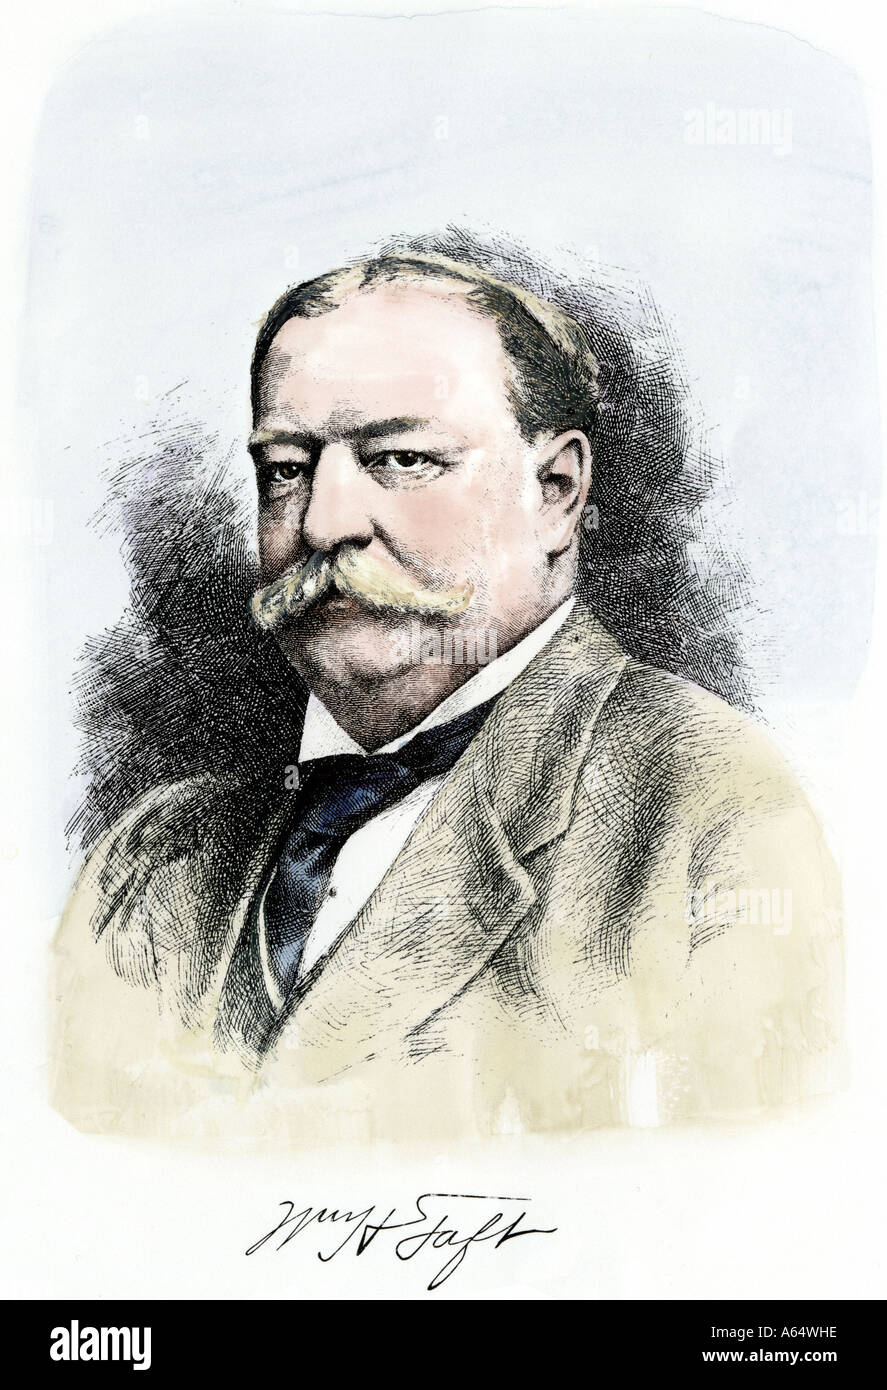 William Howard Taft portrait with autograph. Hand-colored woodcut - Stock Image